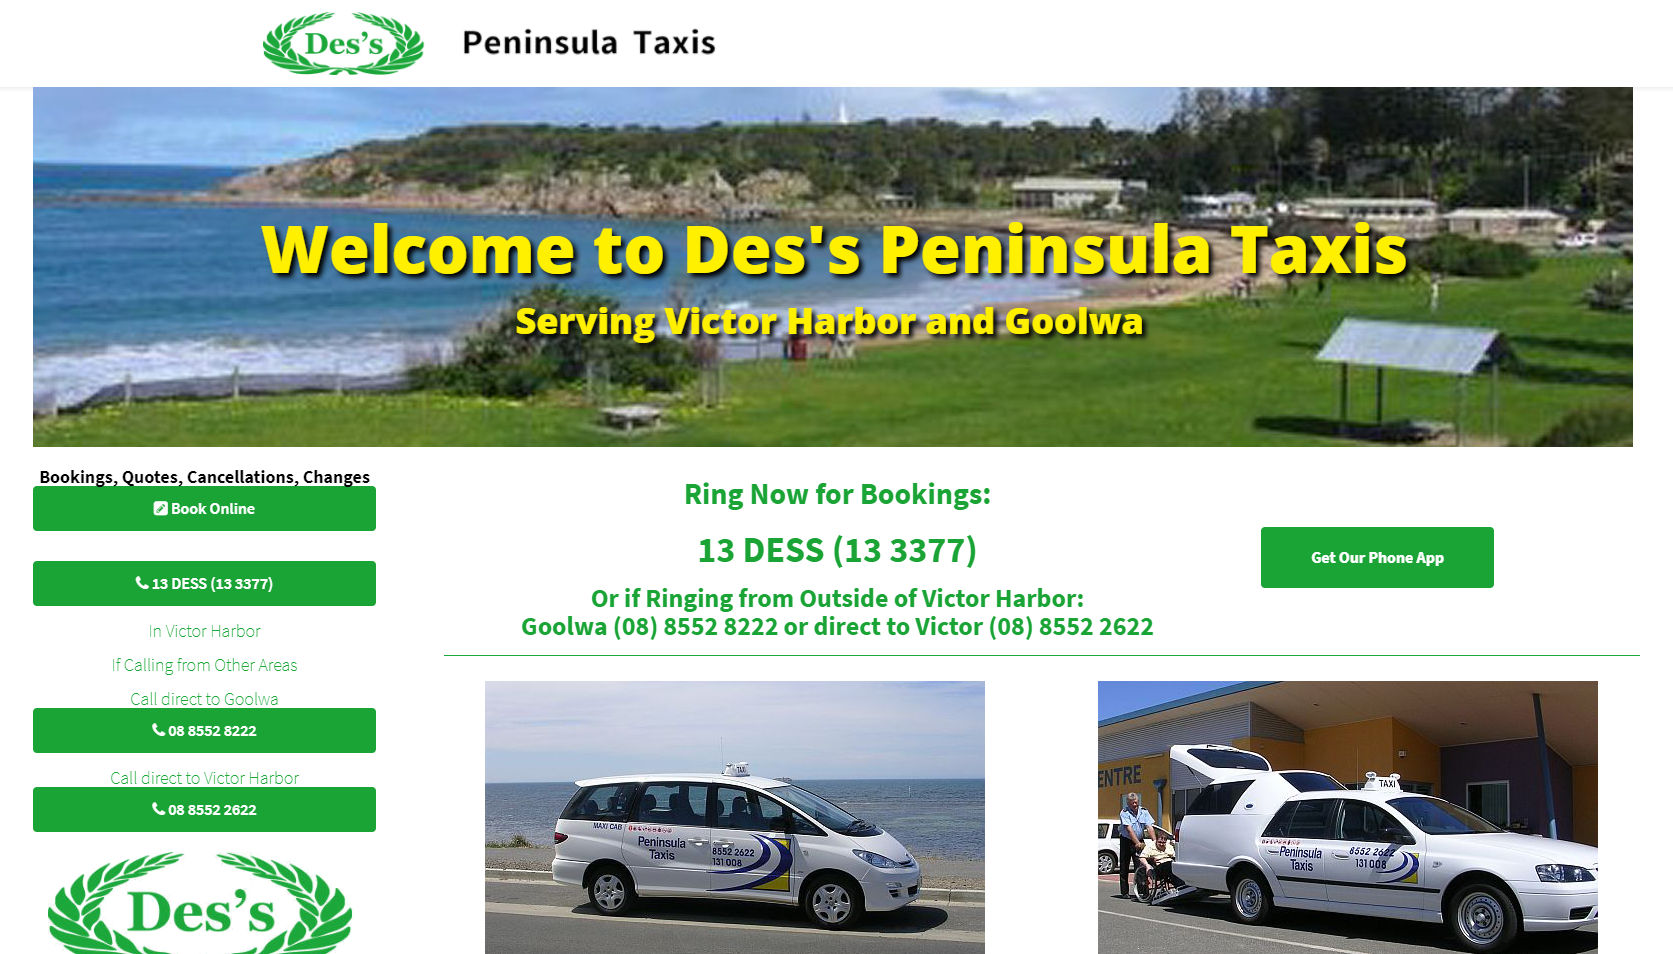 Des's Peninsula Taxis